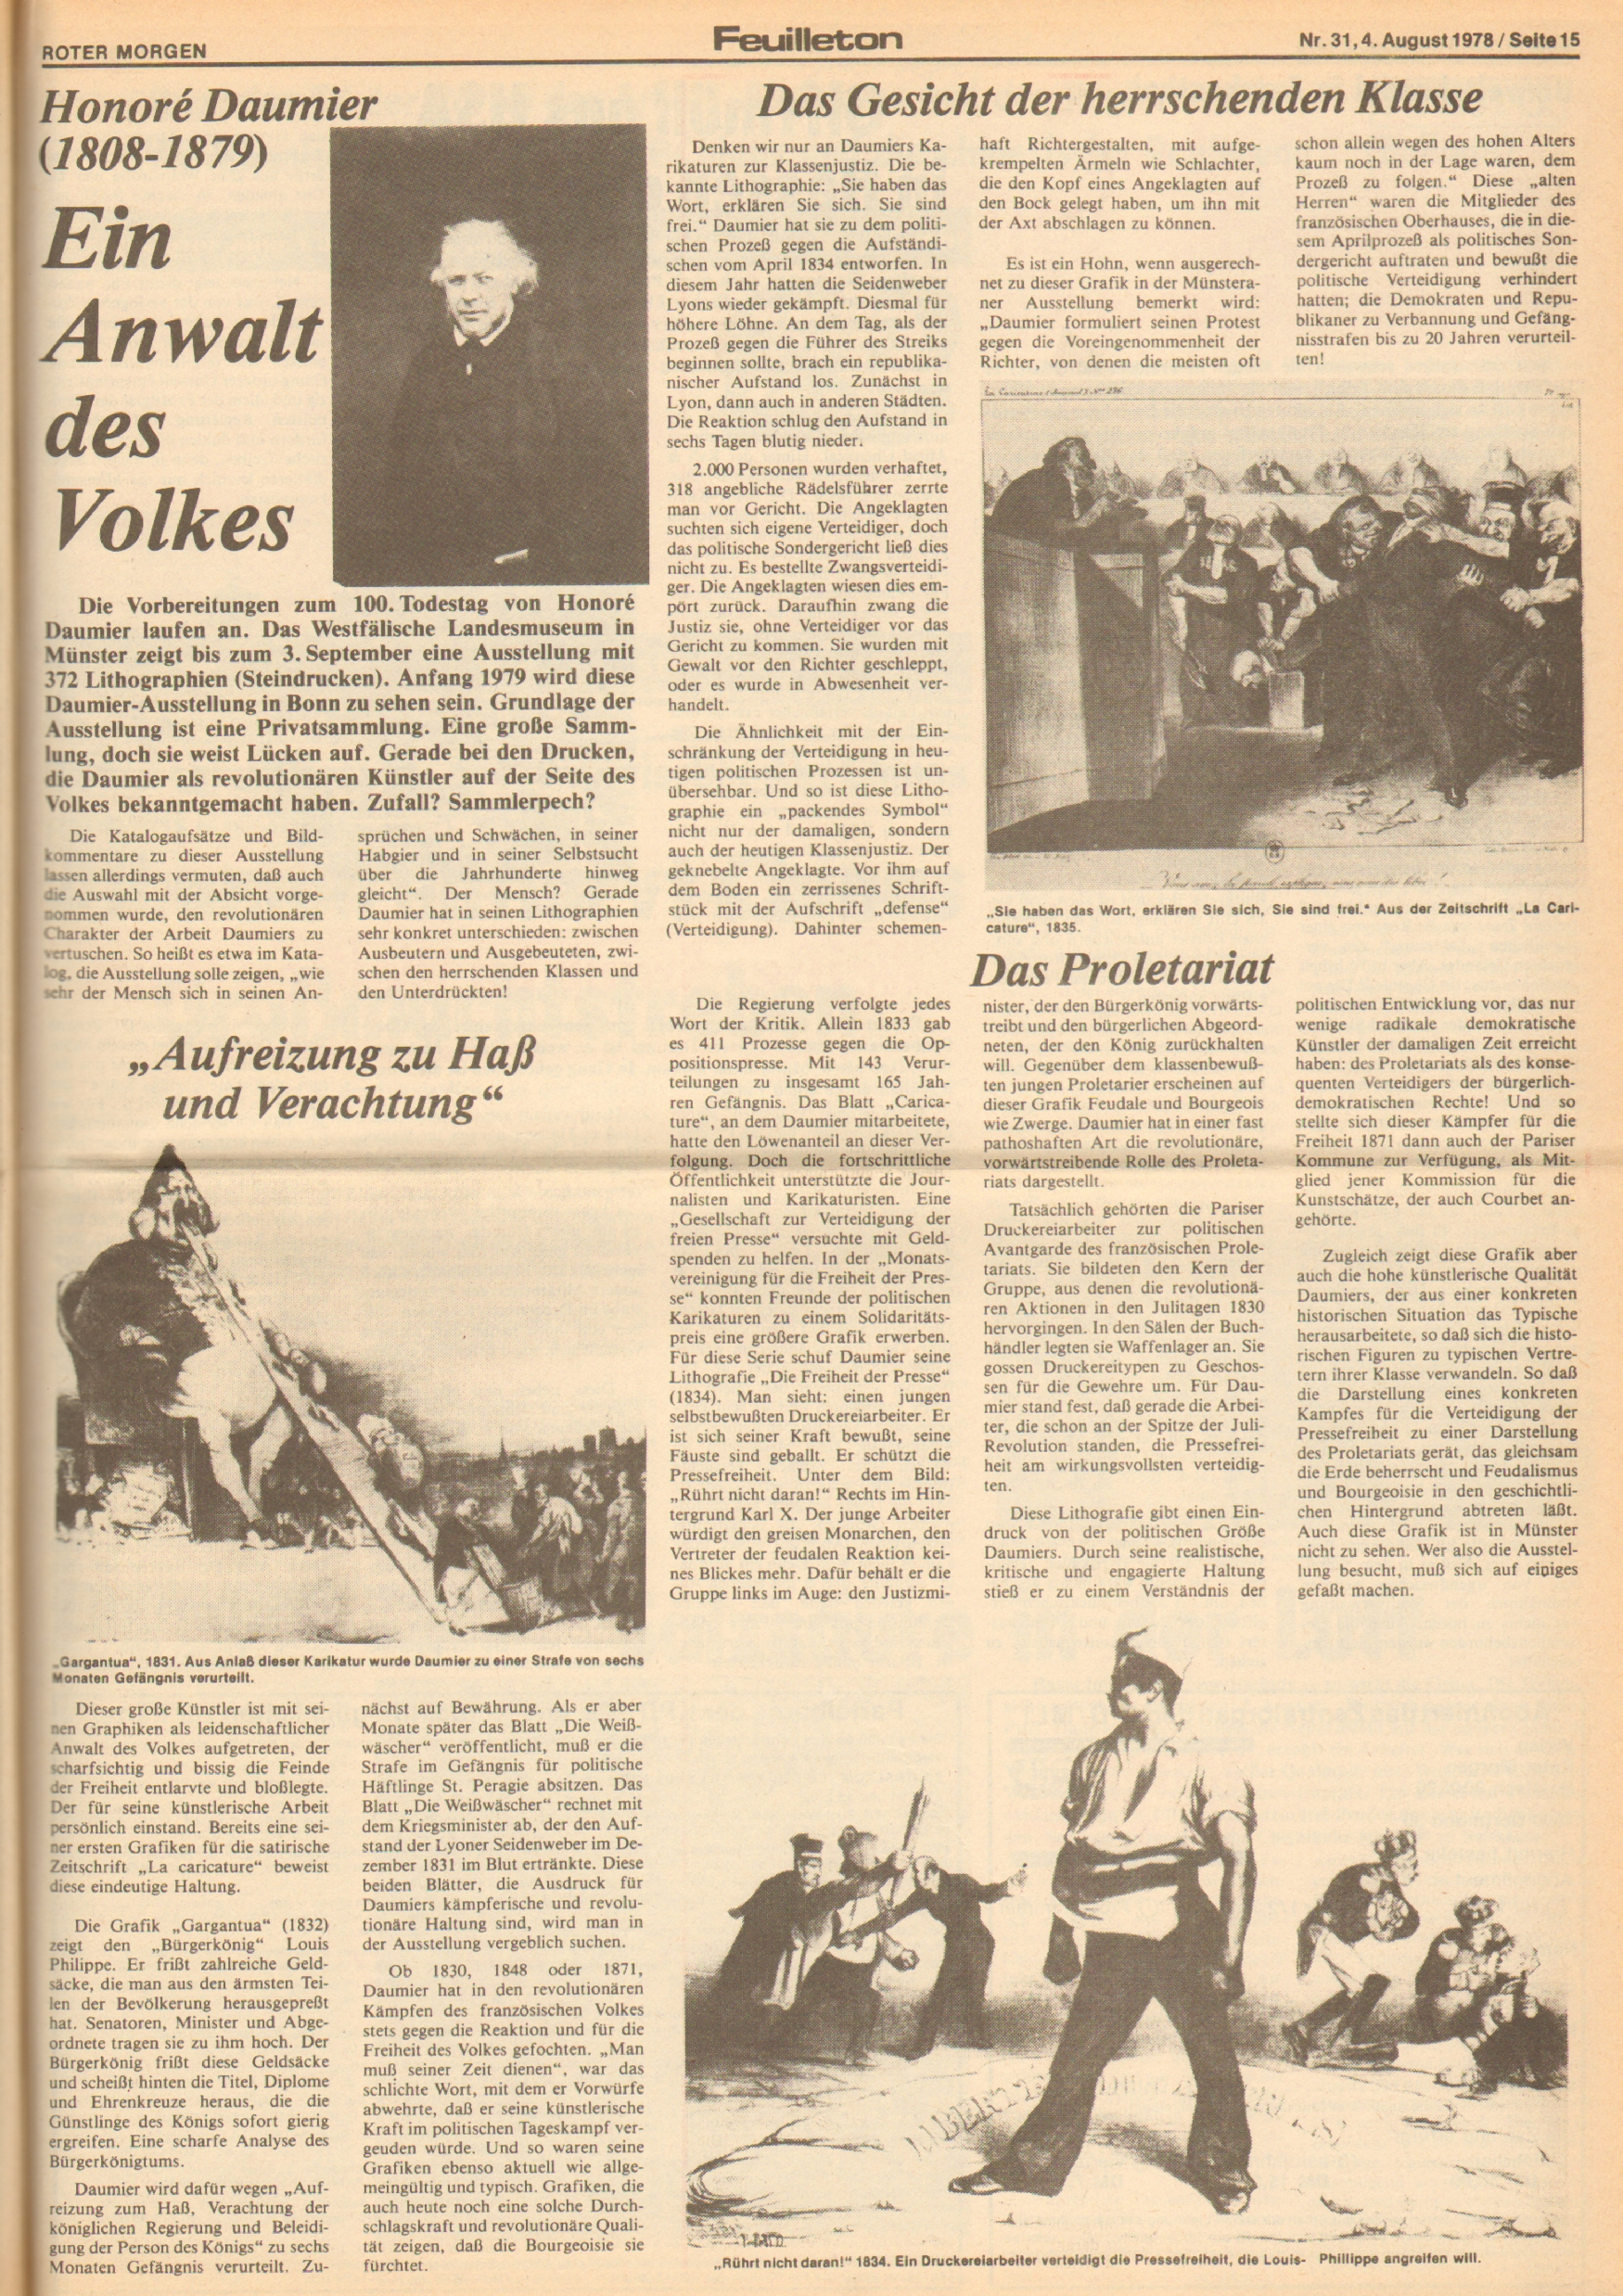 Roter Morgen, 12. Jg., 4. August 1978, Nr. 31, Seite 15